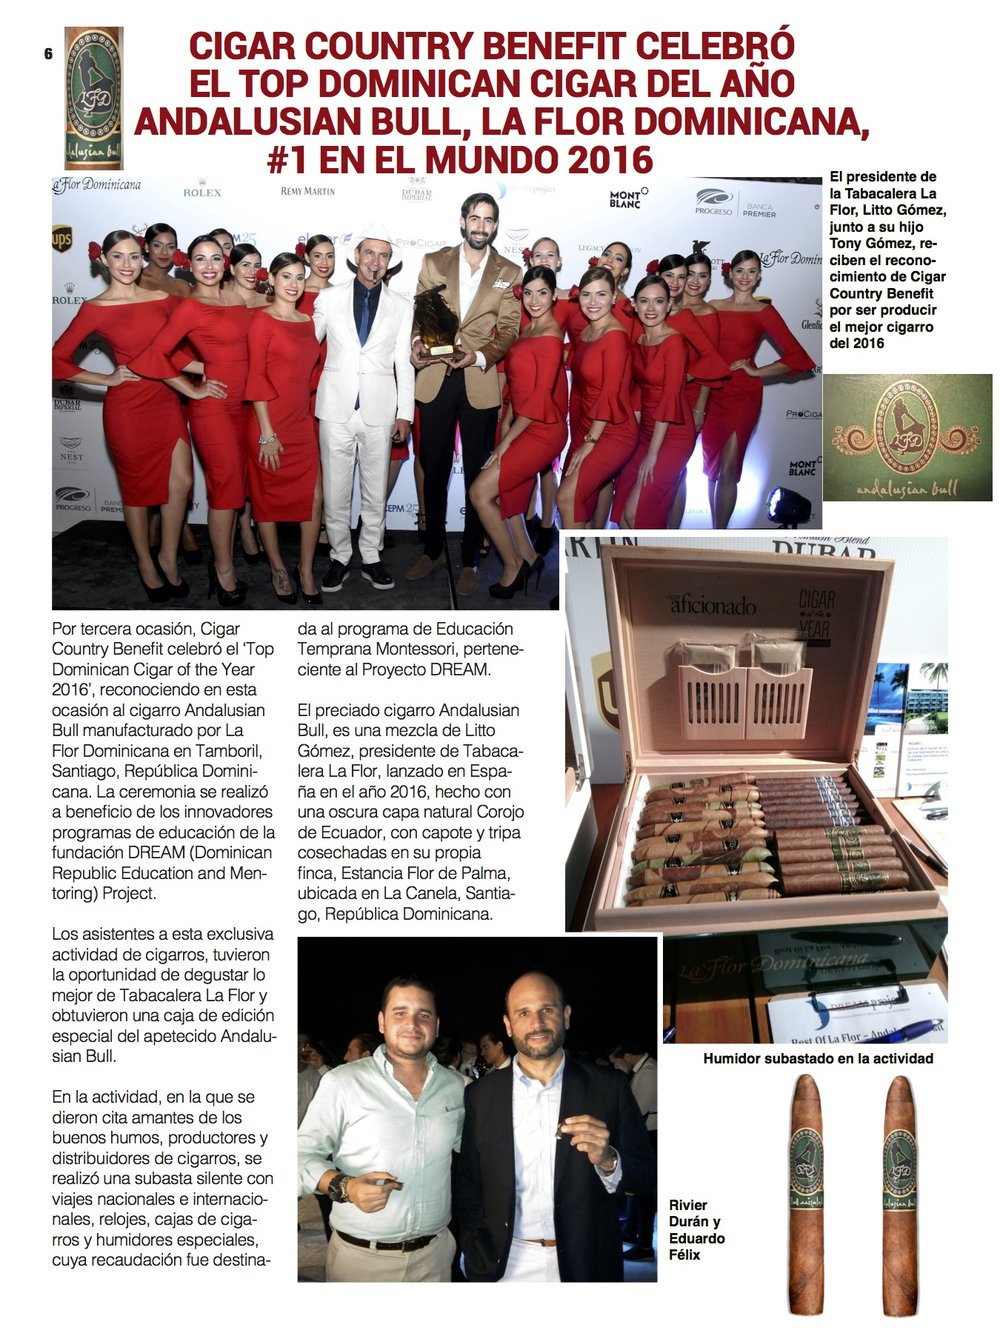 Cigarro Dominicano 174%40 Edicion Revista Digital.jpg